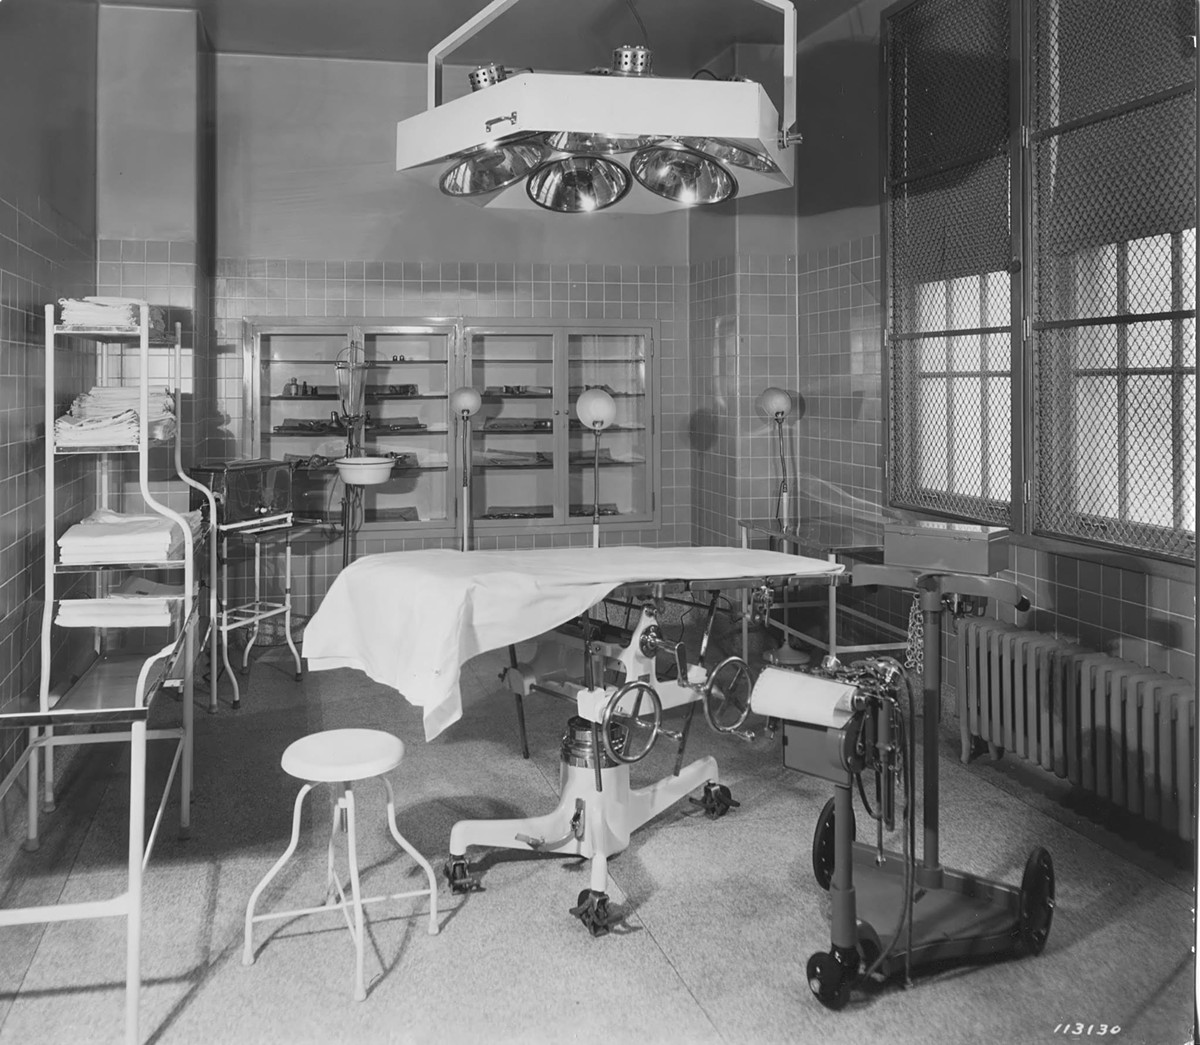 A state of the art operating room at Eloise when it was built in 1925.